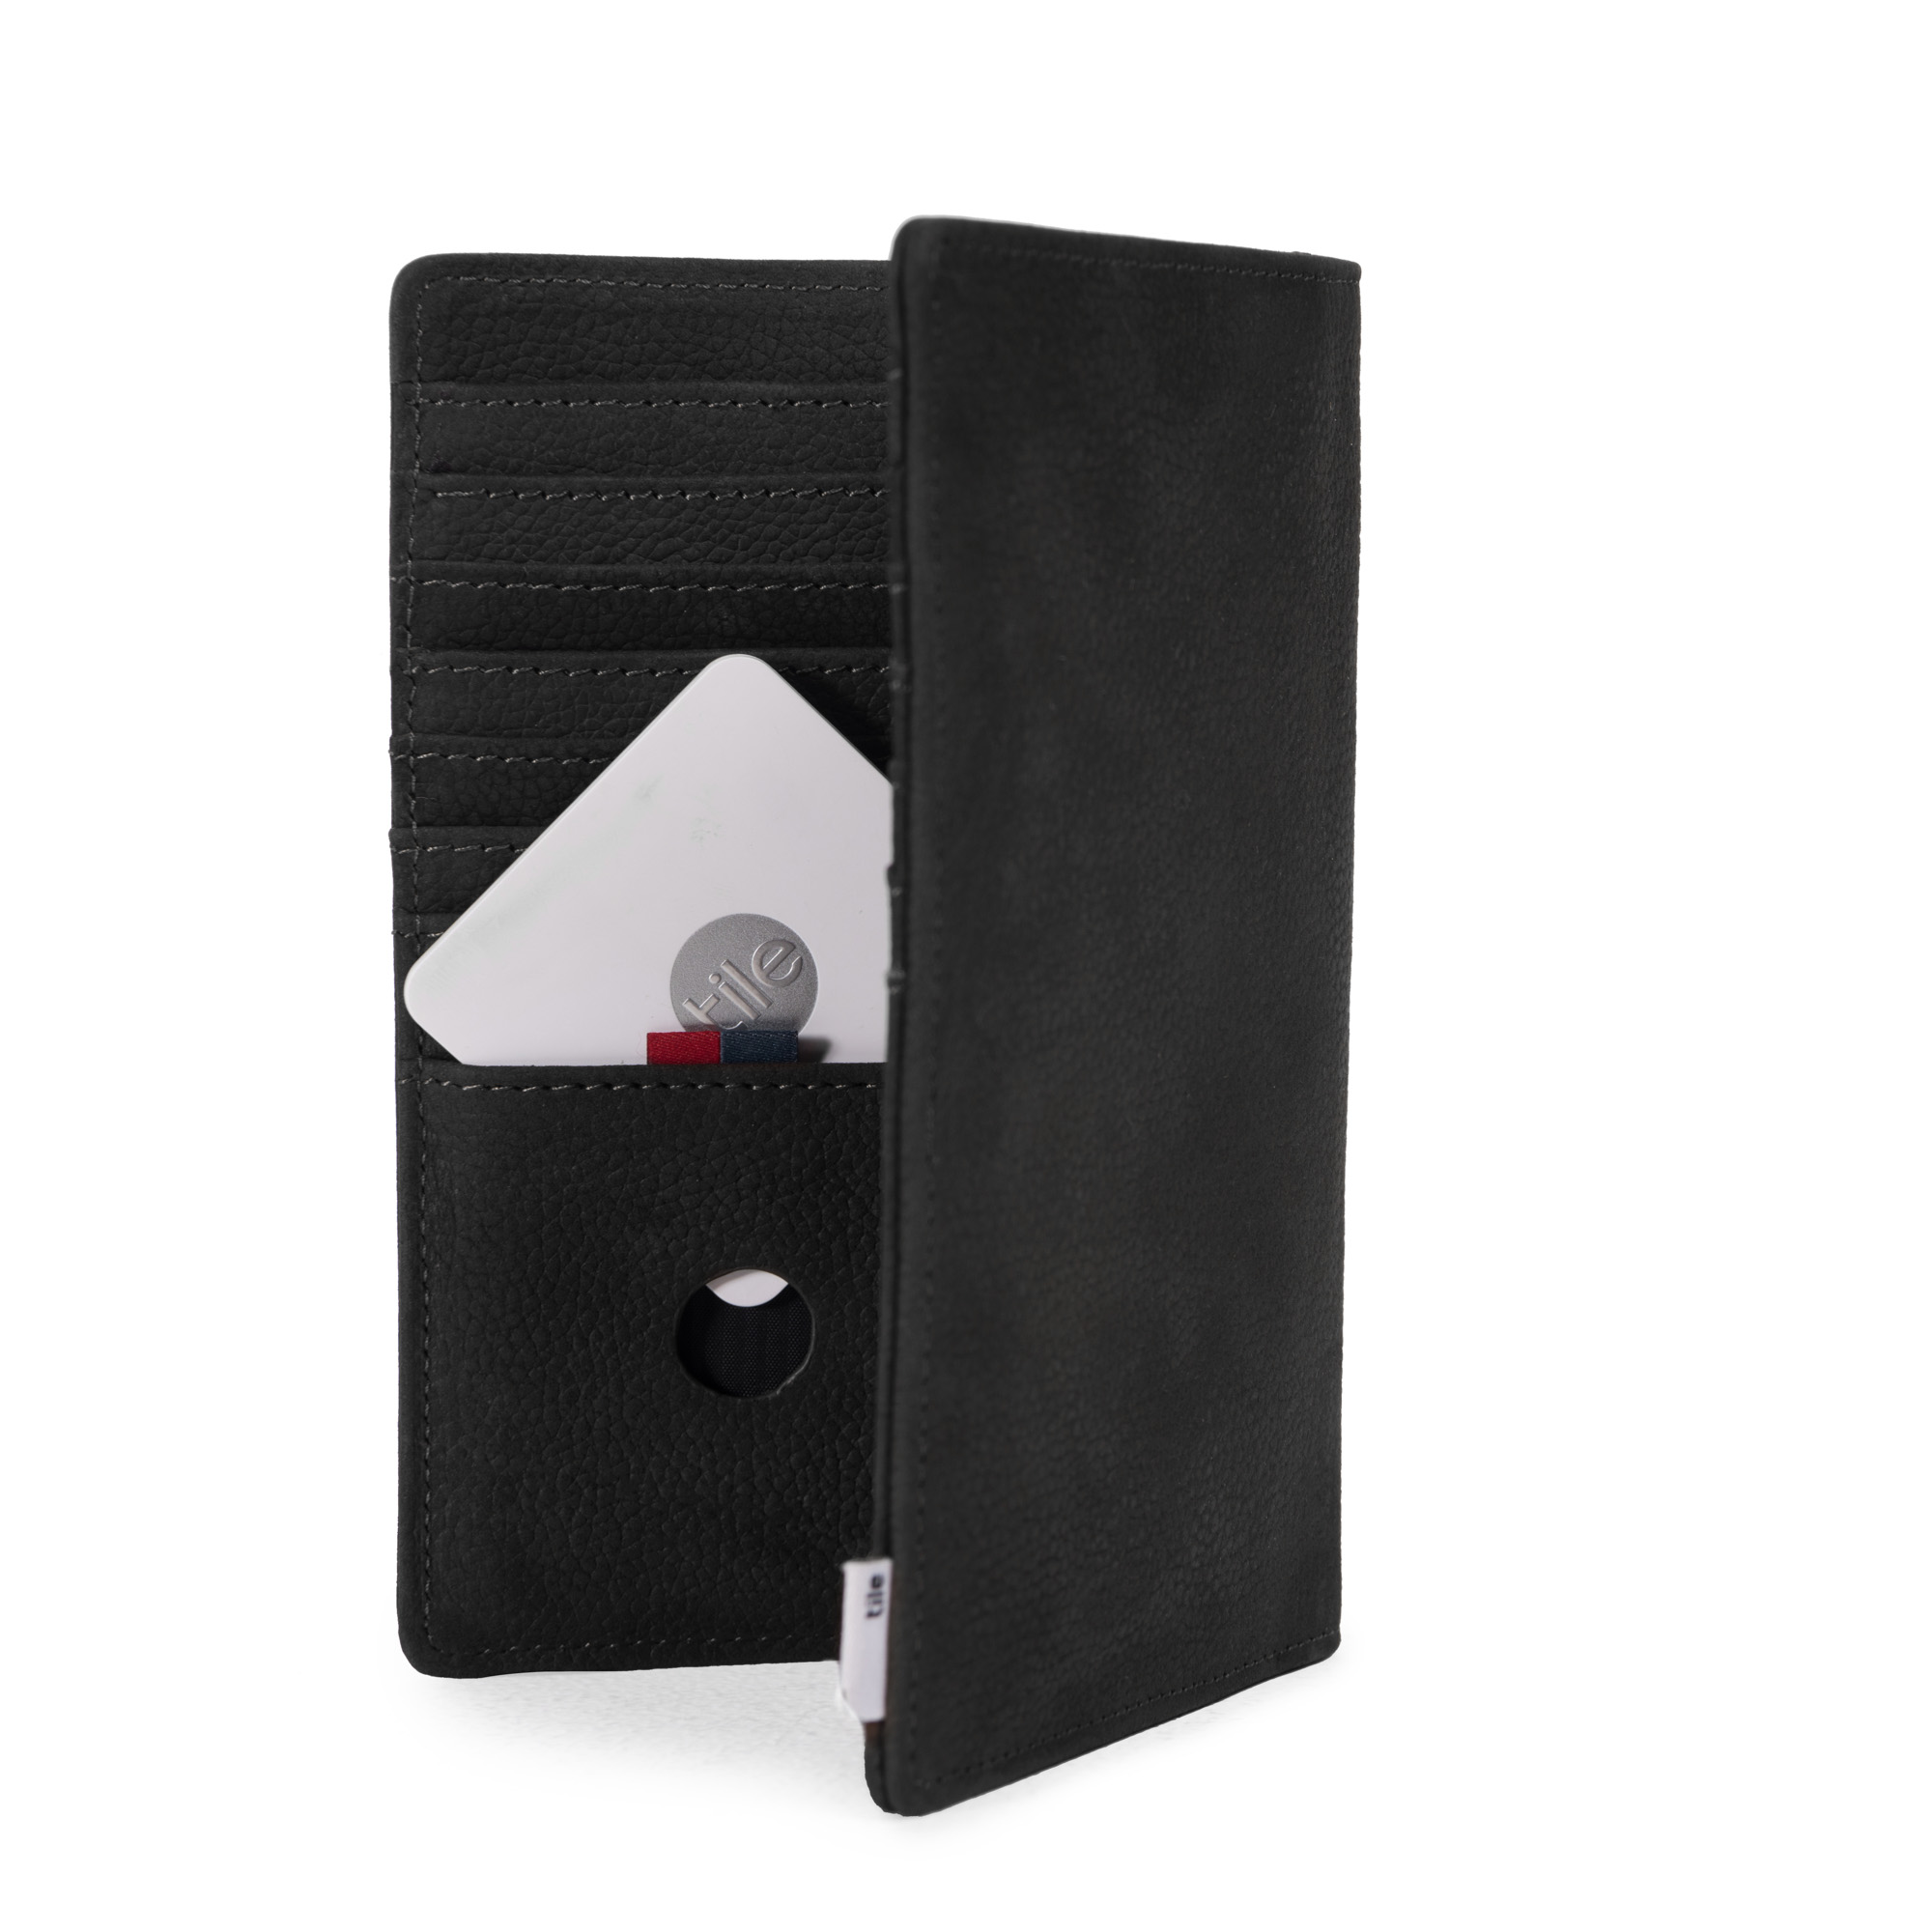 Equipped With The Tile Slim In A Custom Sleeve Search Leather Pport Holder Is Designed To Keep Your Travel Doents Organized And Accessible